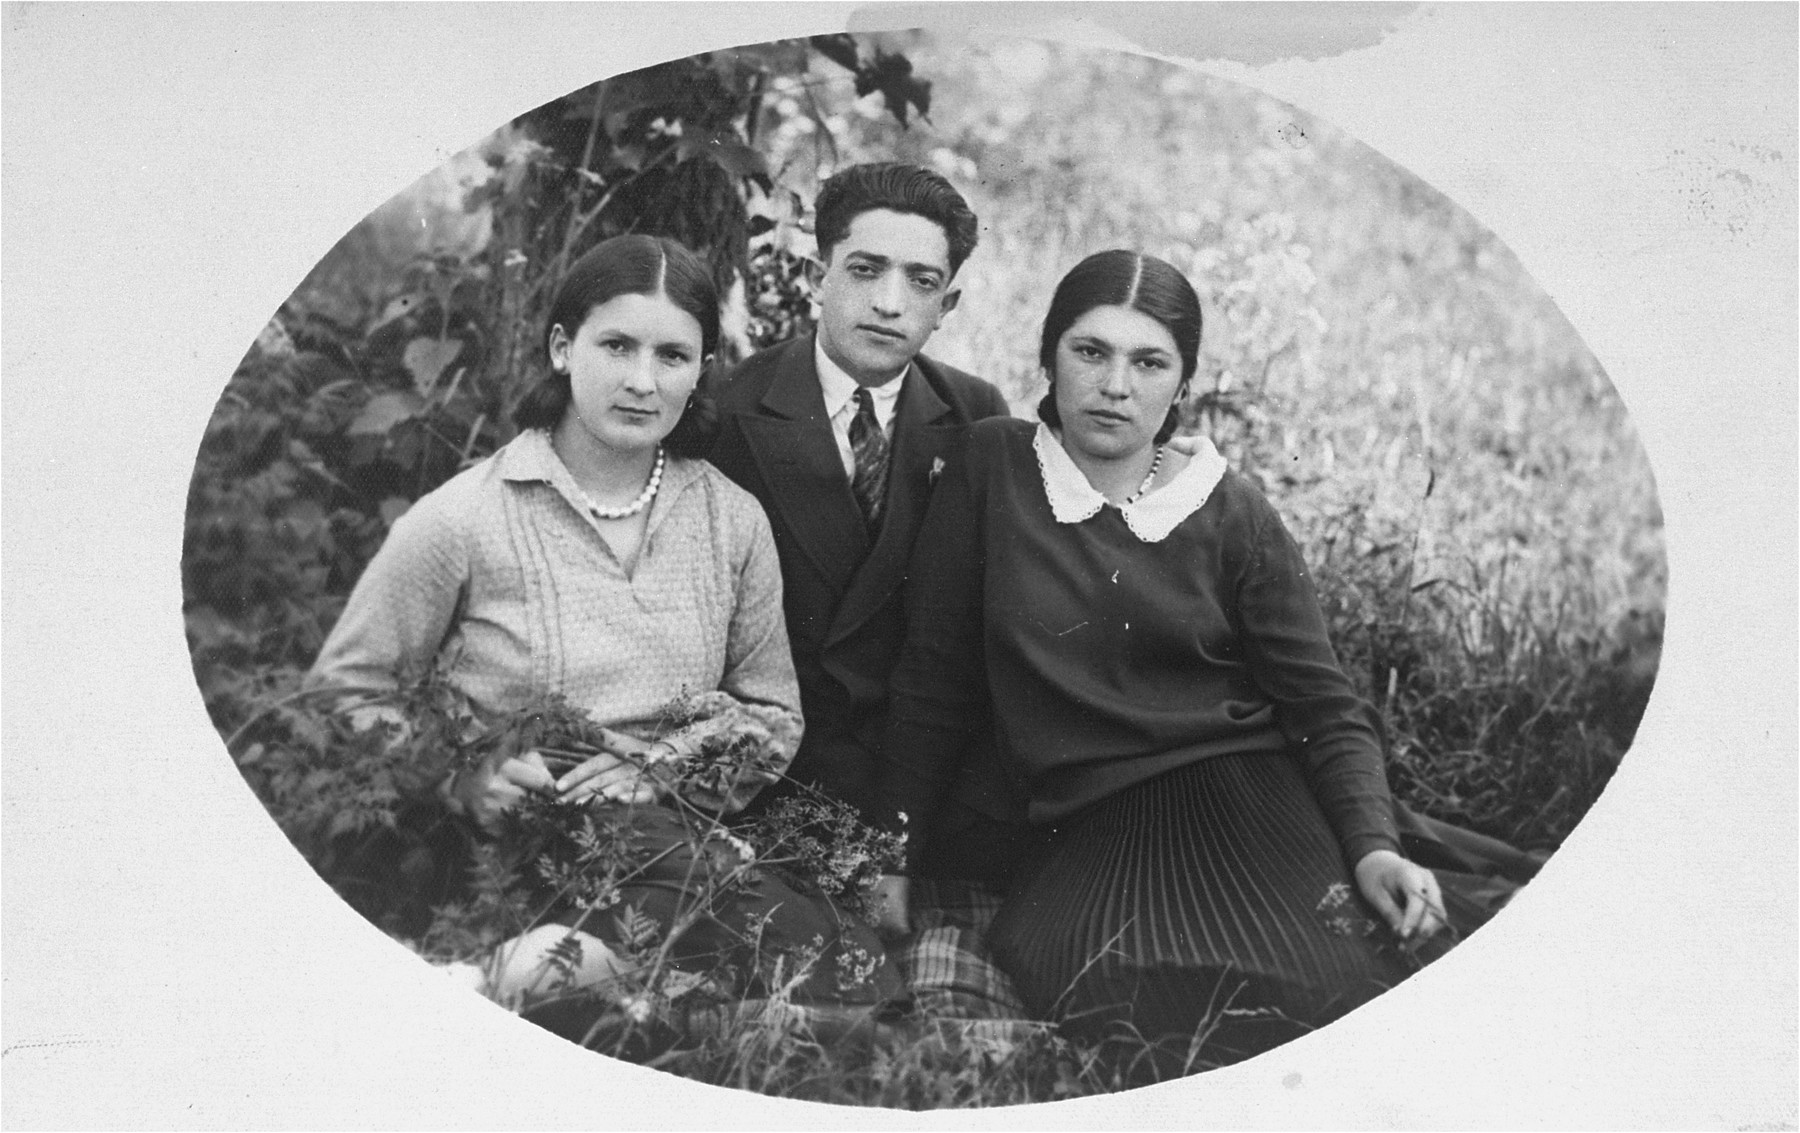 The donor's father, Eliezer Kaplan, poses with a two female friends in Lithuania.